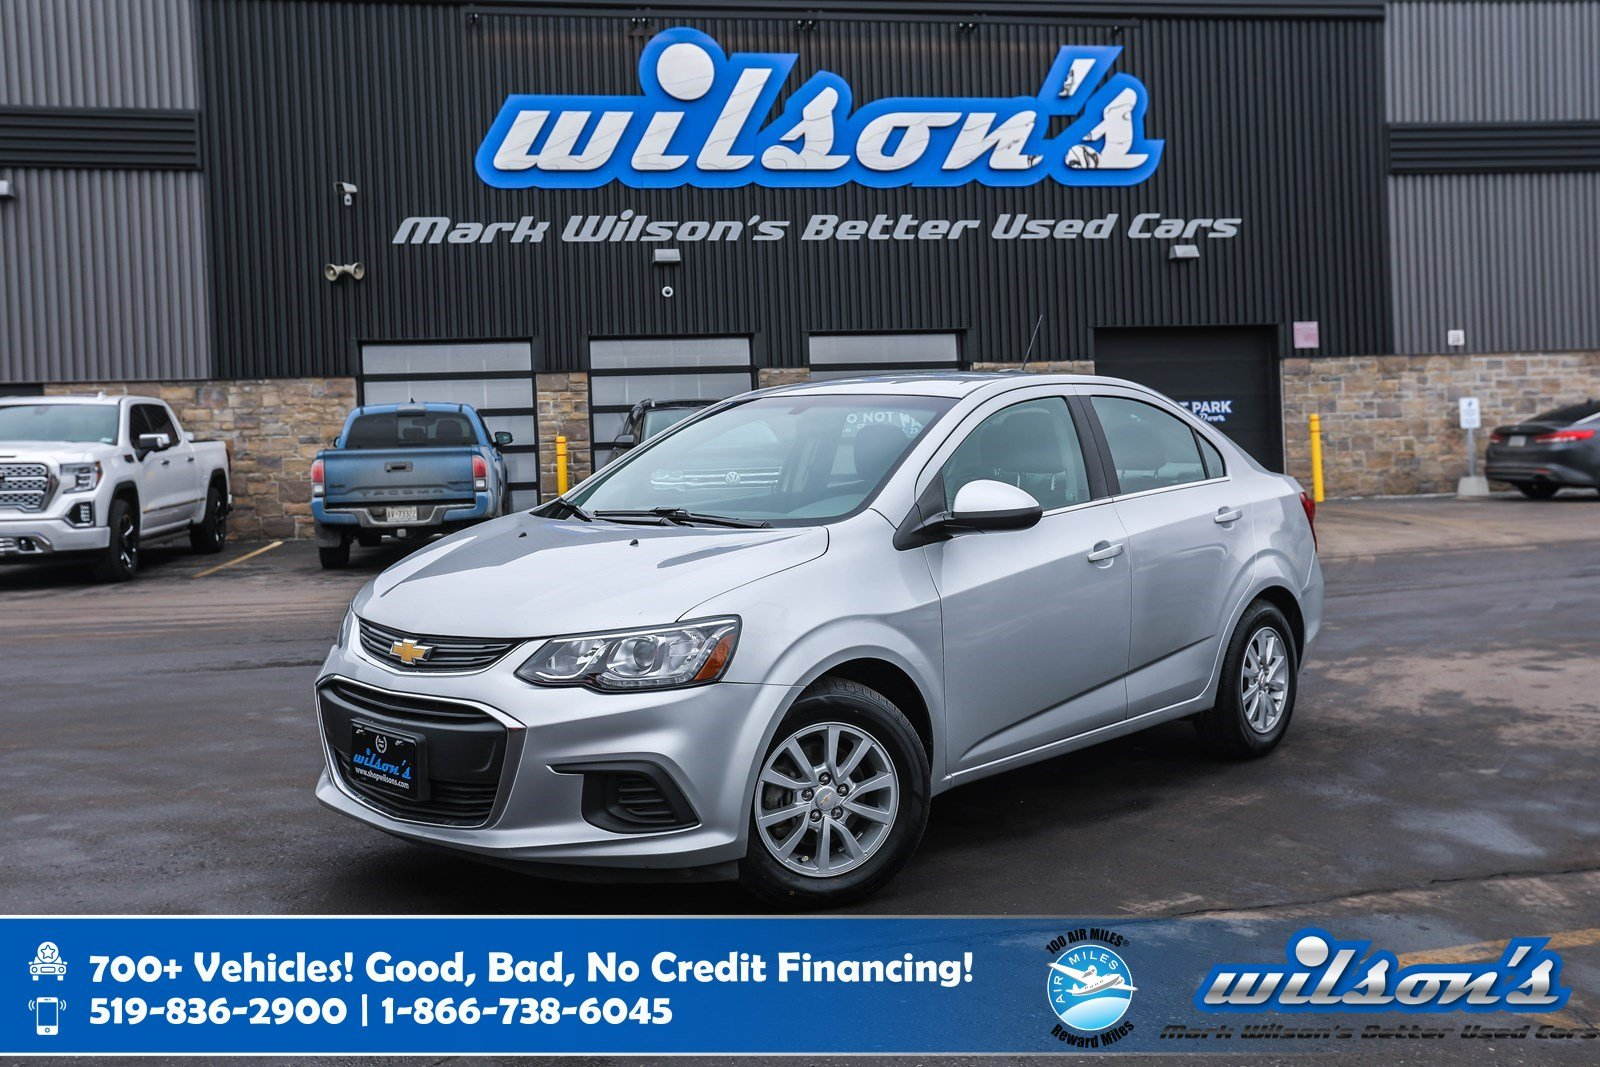 Certified Pre-Owned 2018 Chevrolet Sonic LT, Rear Camera, Heated Seats, Remote Start, New Tires, Bluetooth, Heated Mirrors, 6 Speaker Audio